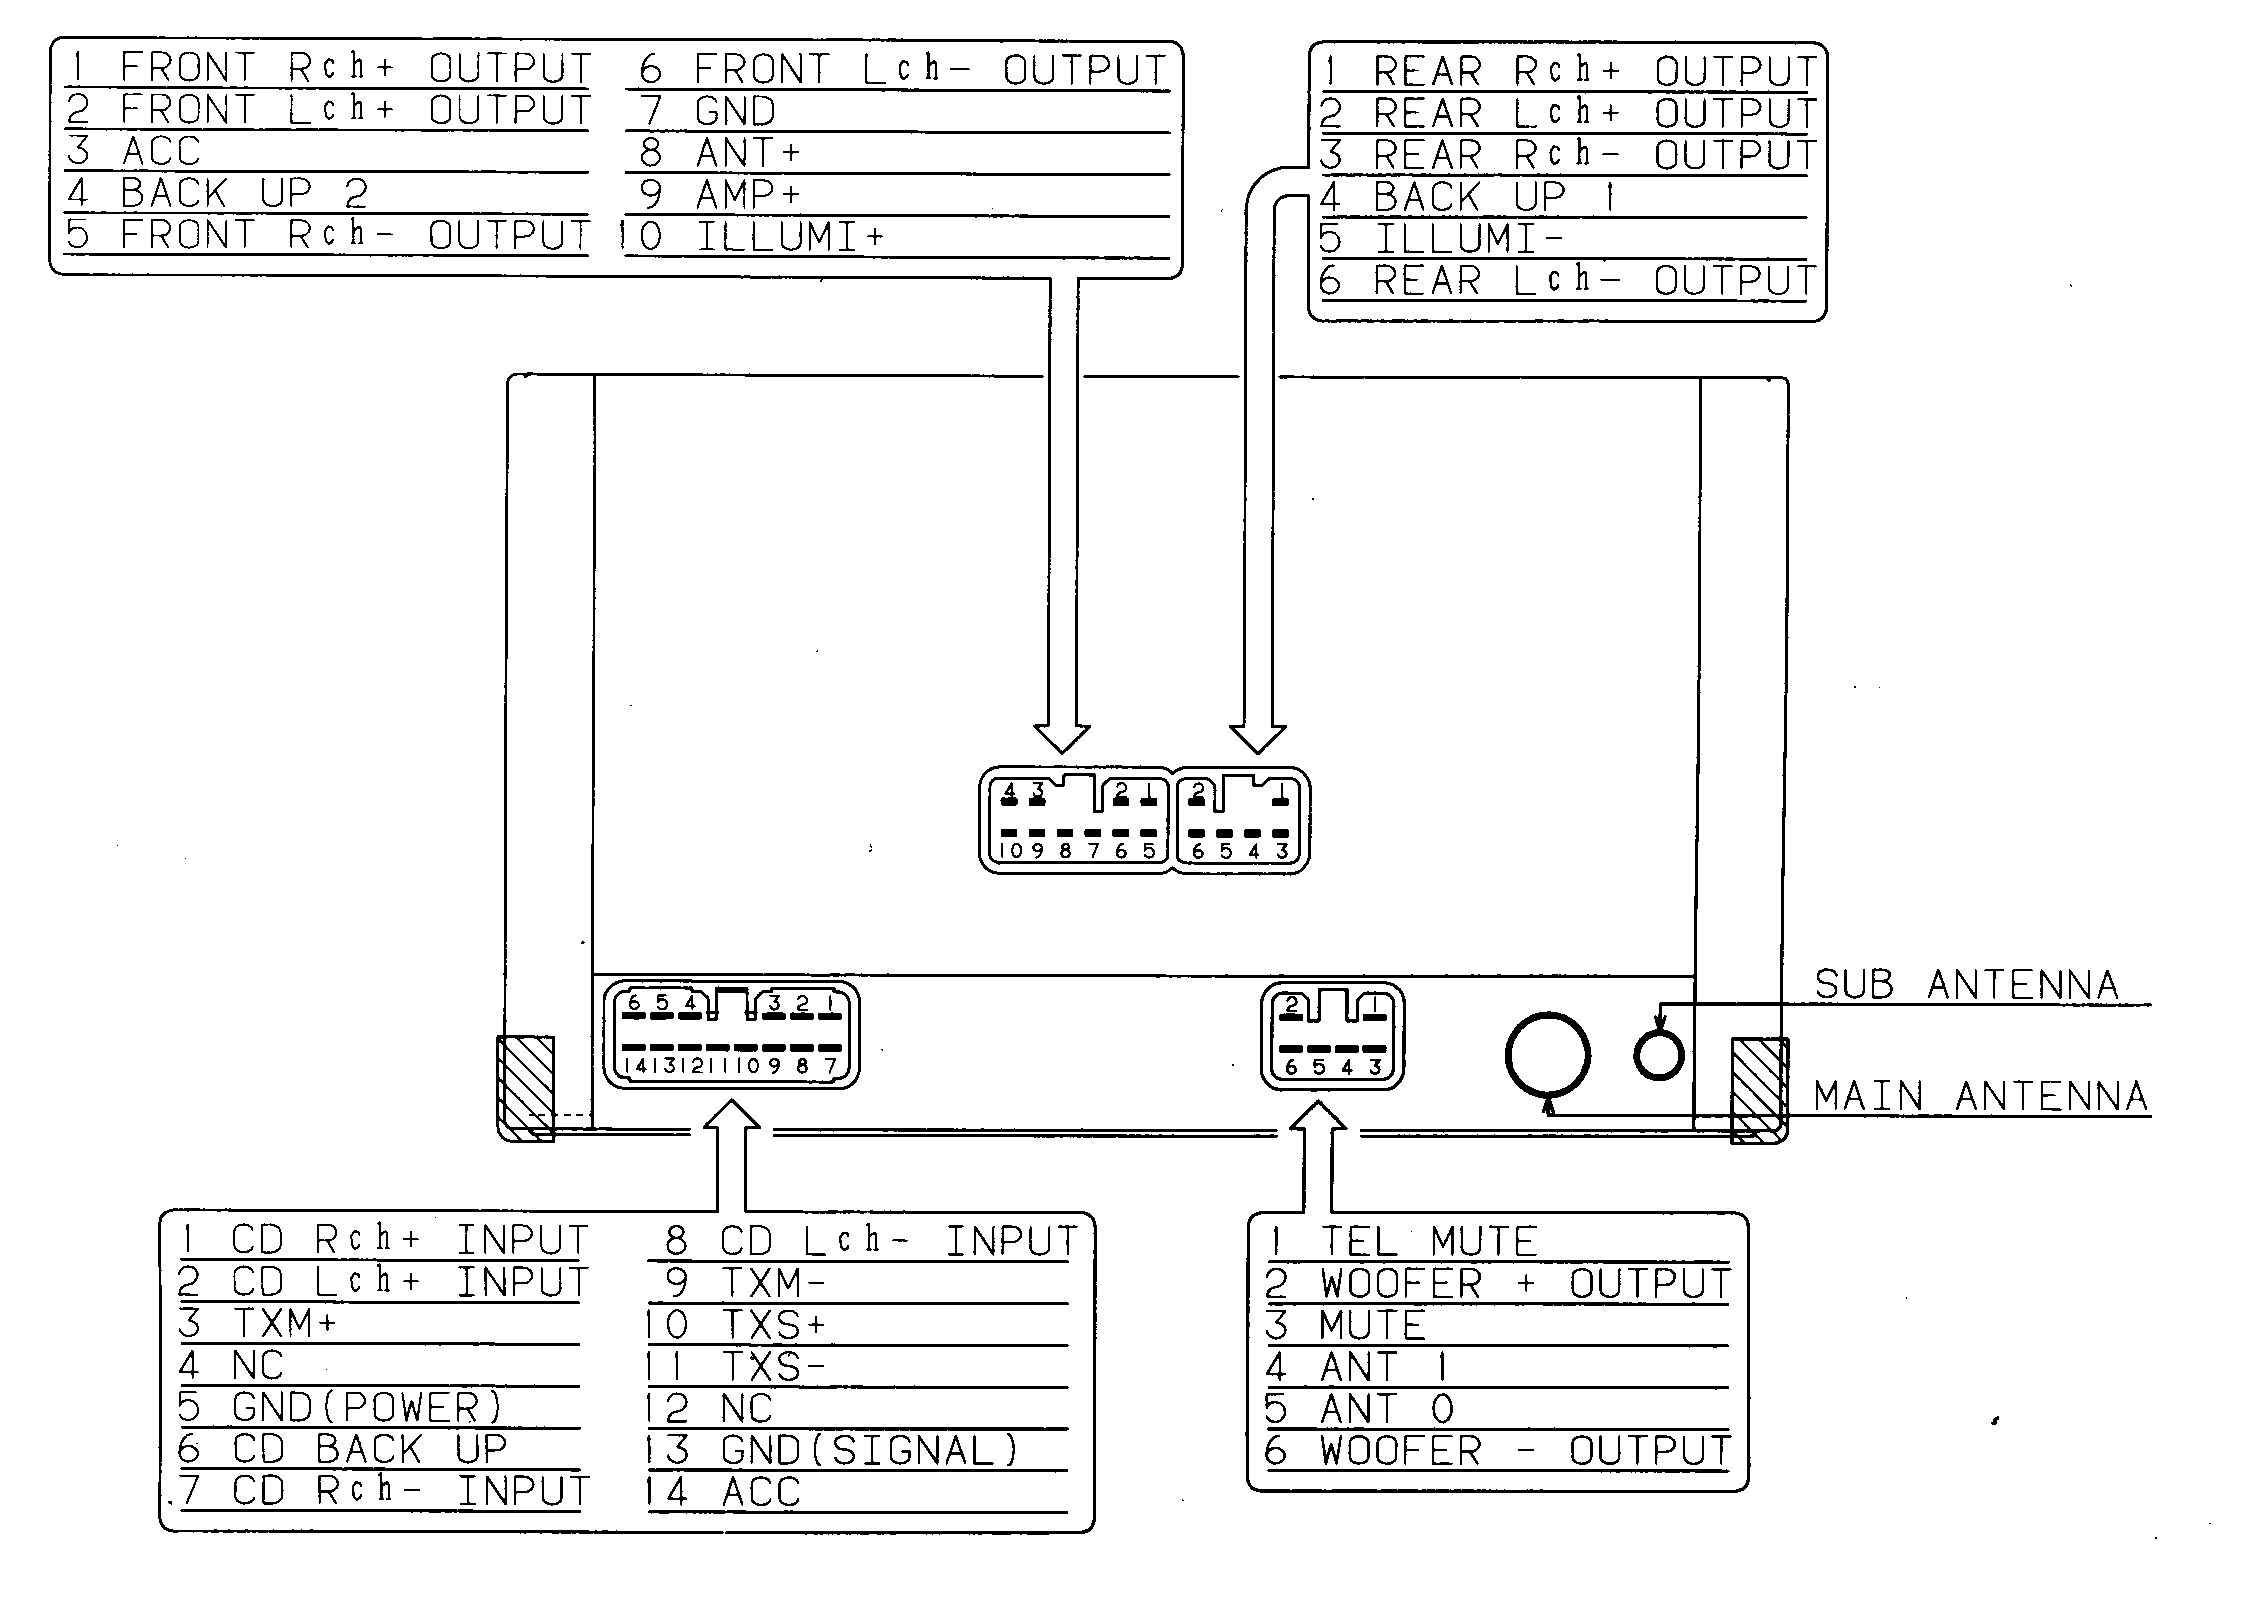 WireHarnessLexus121001 car audio wire diagram codes lexus factory car stereo repair radio diagram at honlapkeszites.co